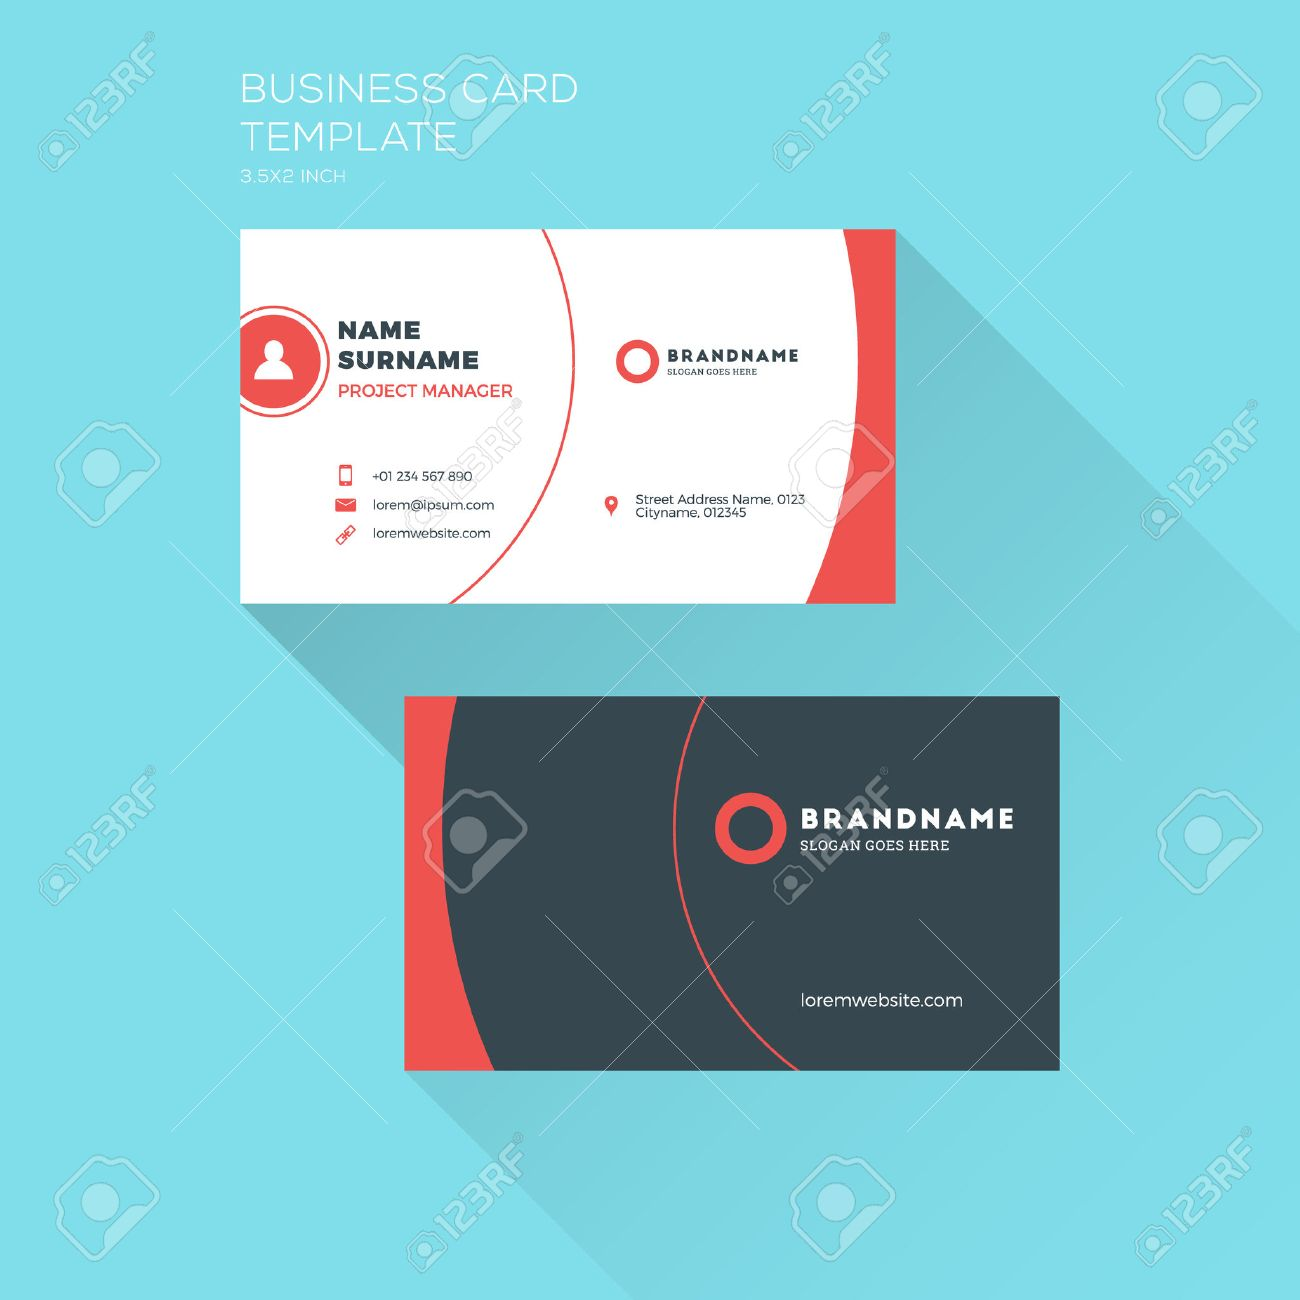 Corporate business card print template personal visiting card corporate business card print template personal visiting card with company clean flat design colourmoves